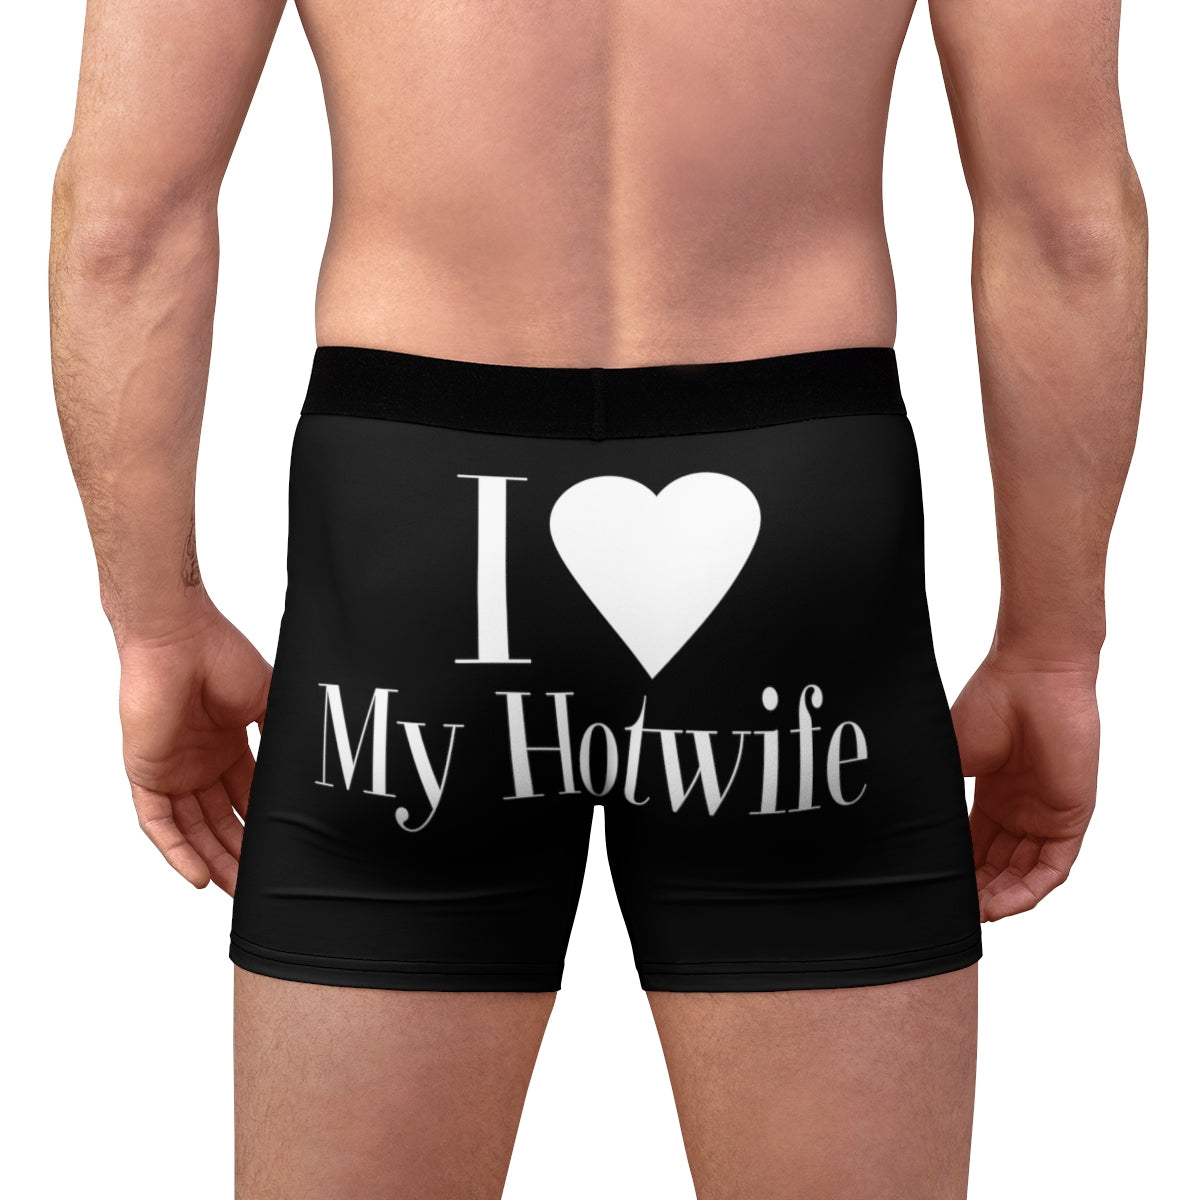 I love My Hotwife Men's Boxer Briefs